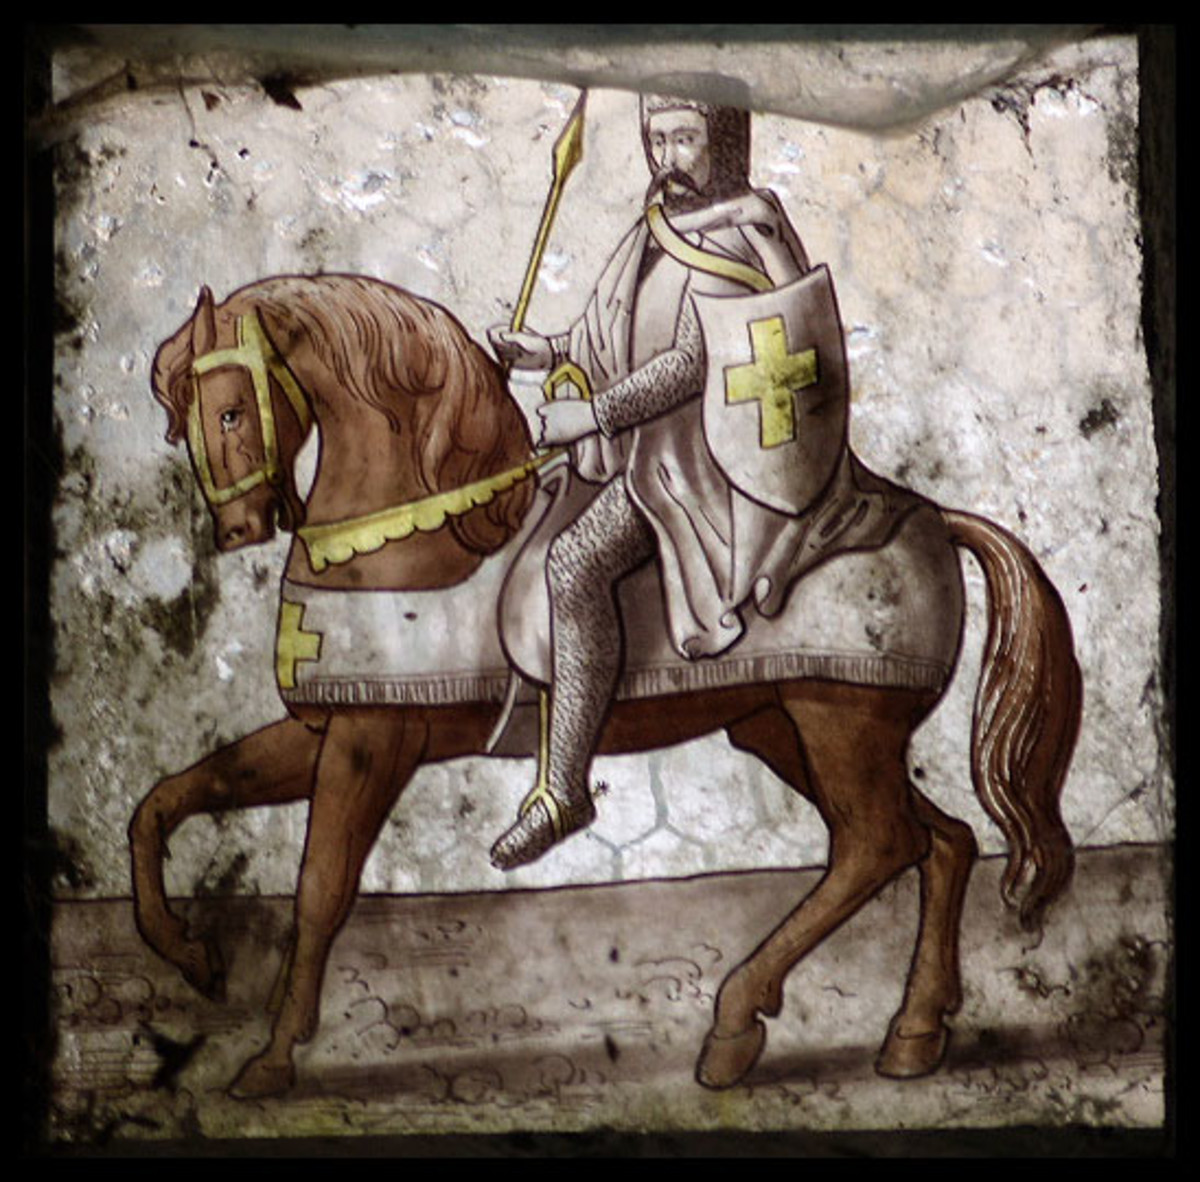 Stained glass in a Cornwall church depicting a Knight Templar.